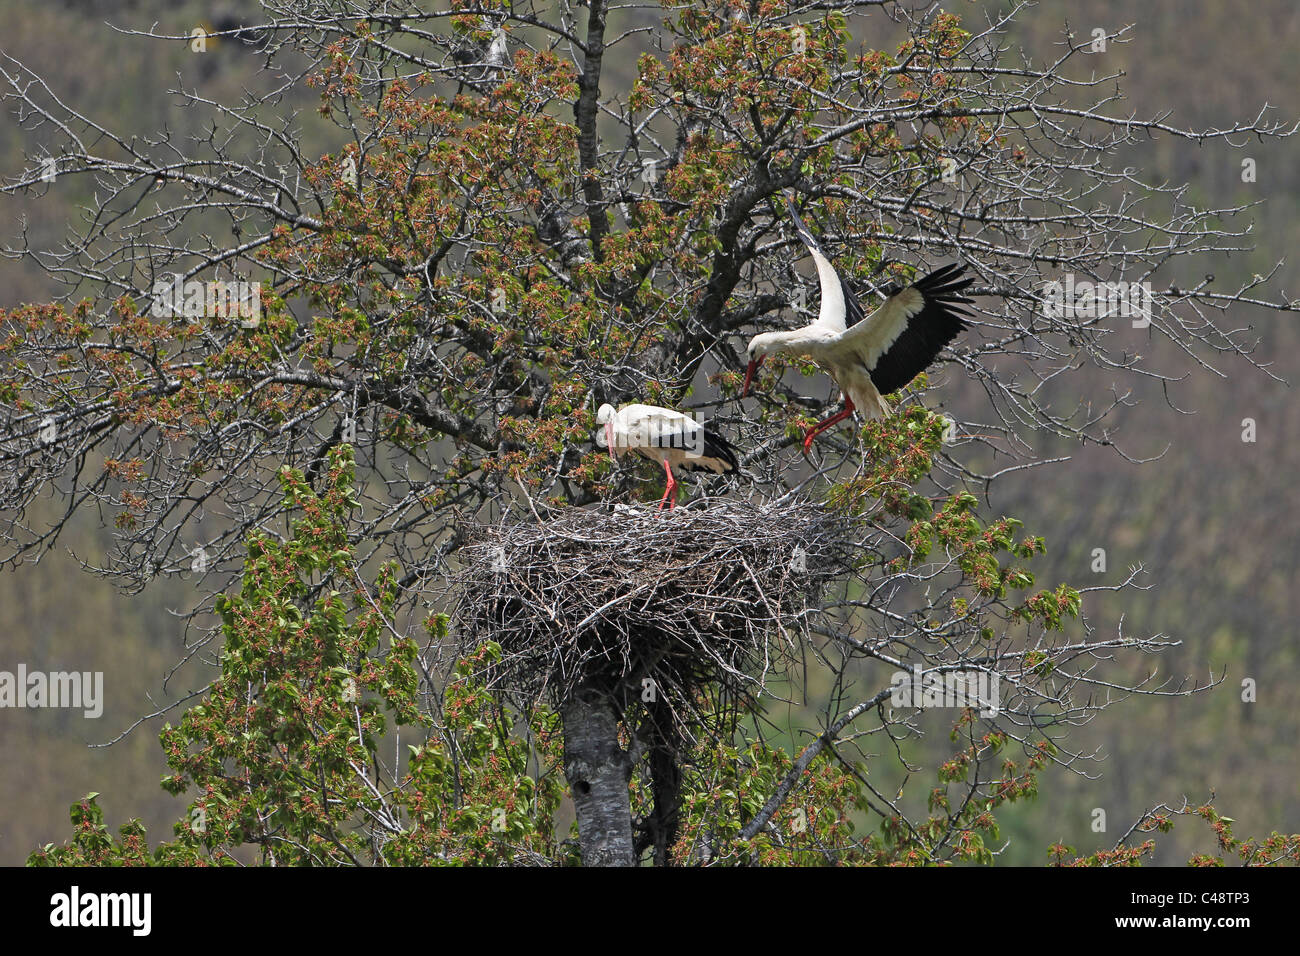 [White Stork] [Ciconia ciconia] flying in to nest in a tree at [Los Espejos de la Reina], [Castilla y Leon], Spain Stock Photo